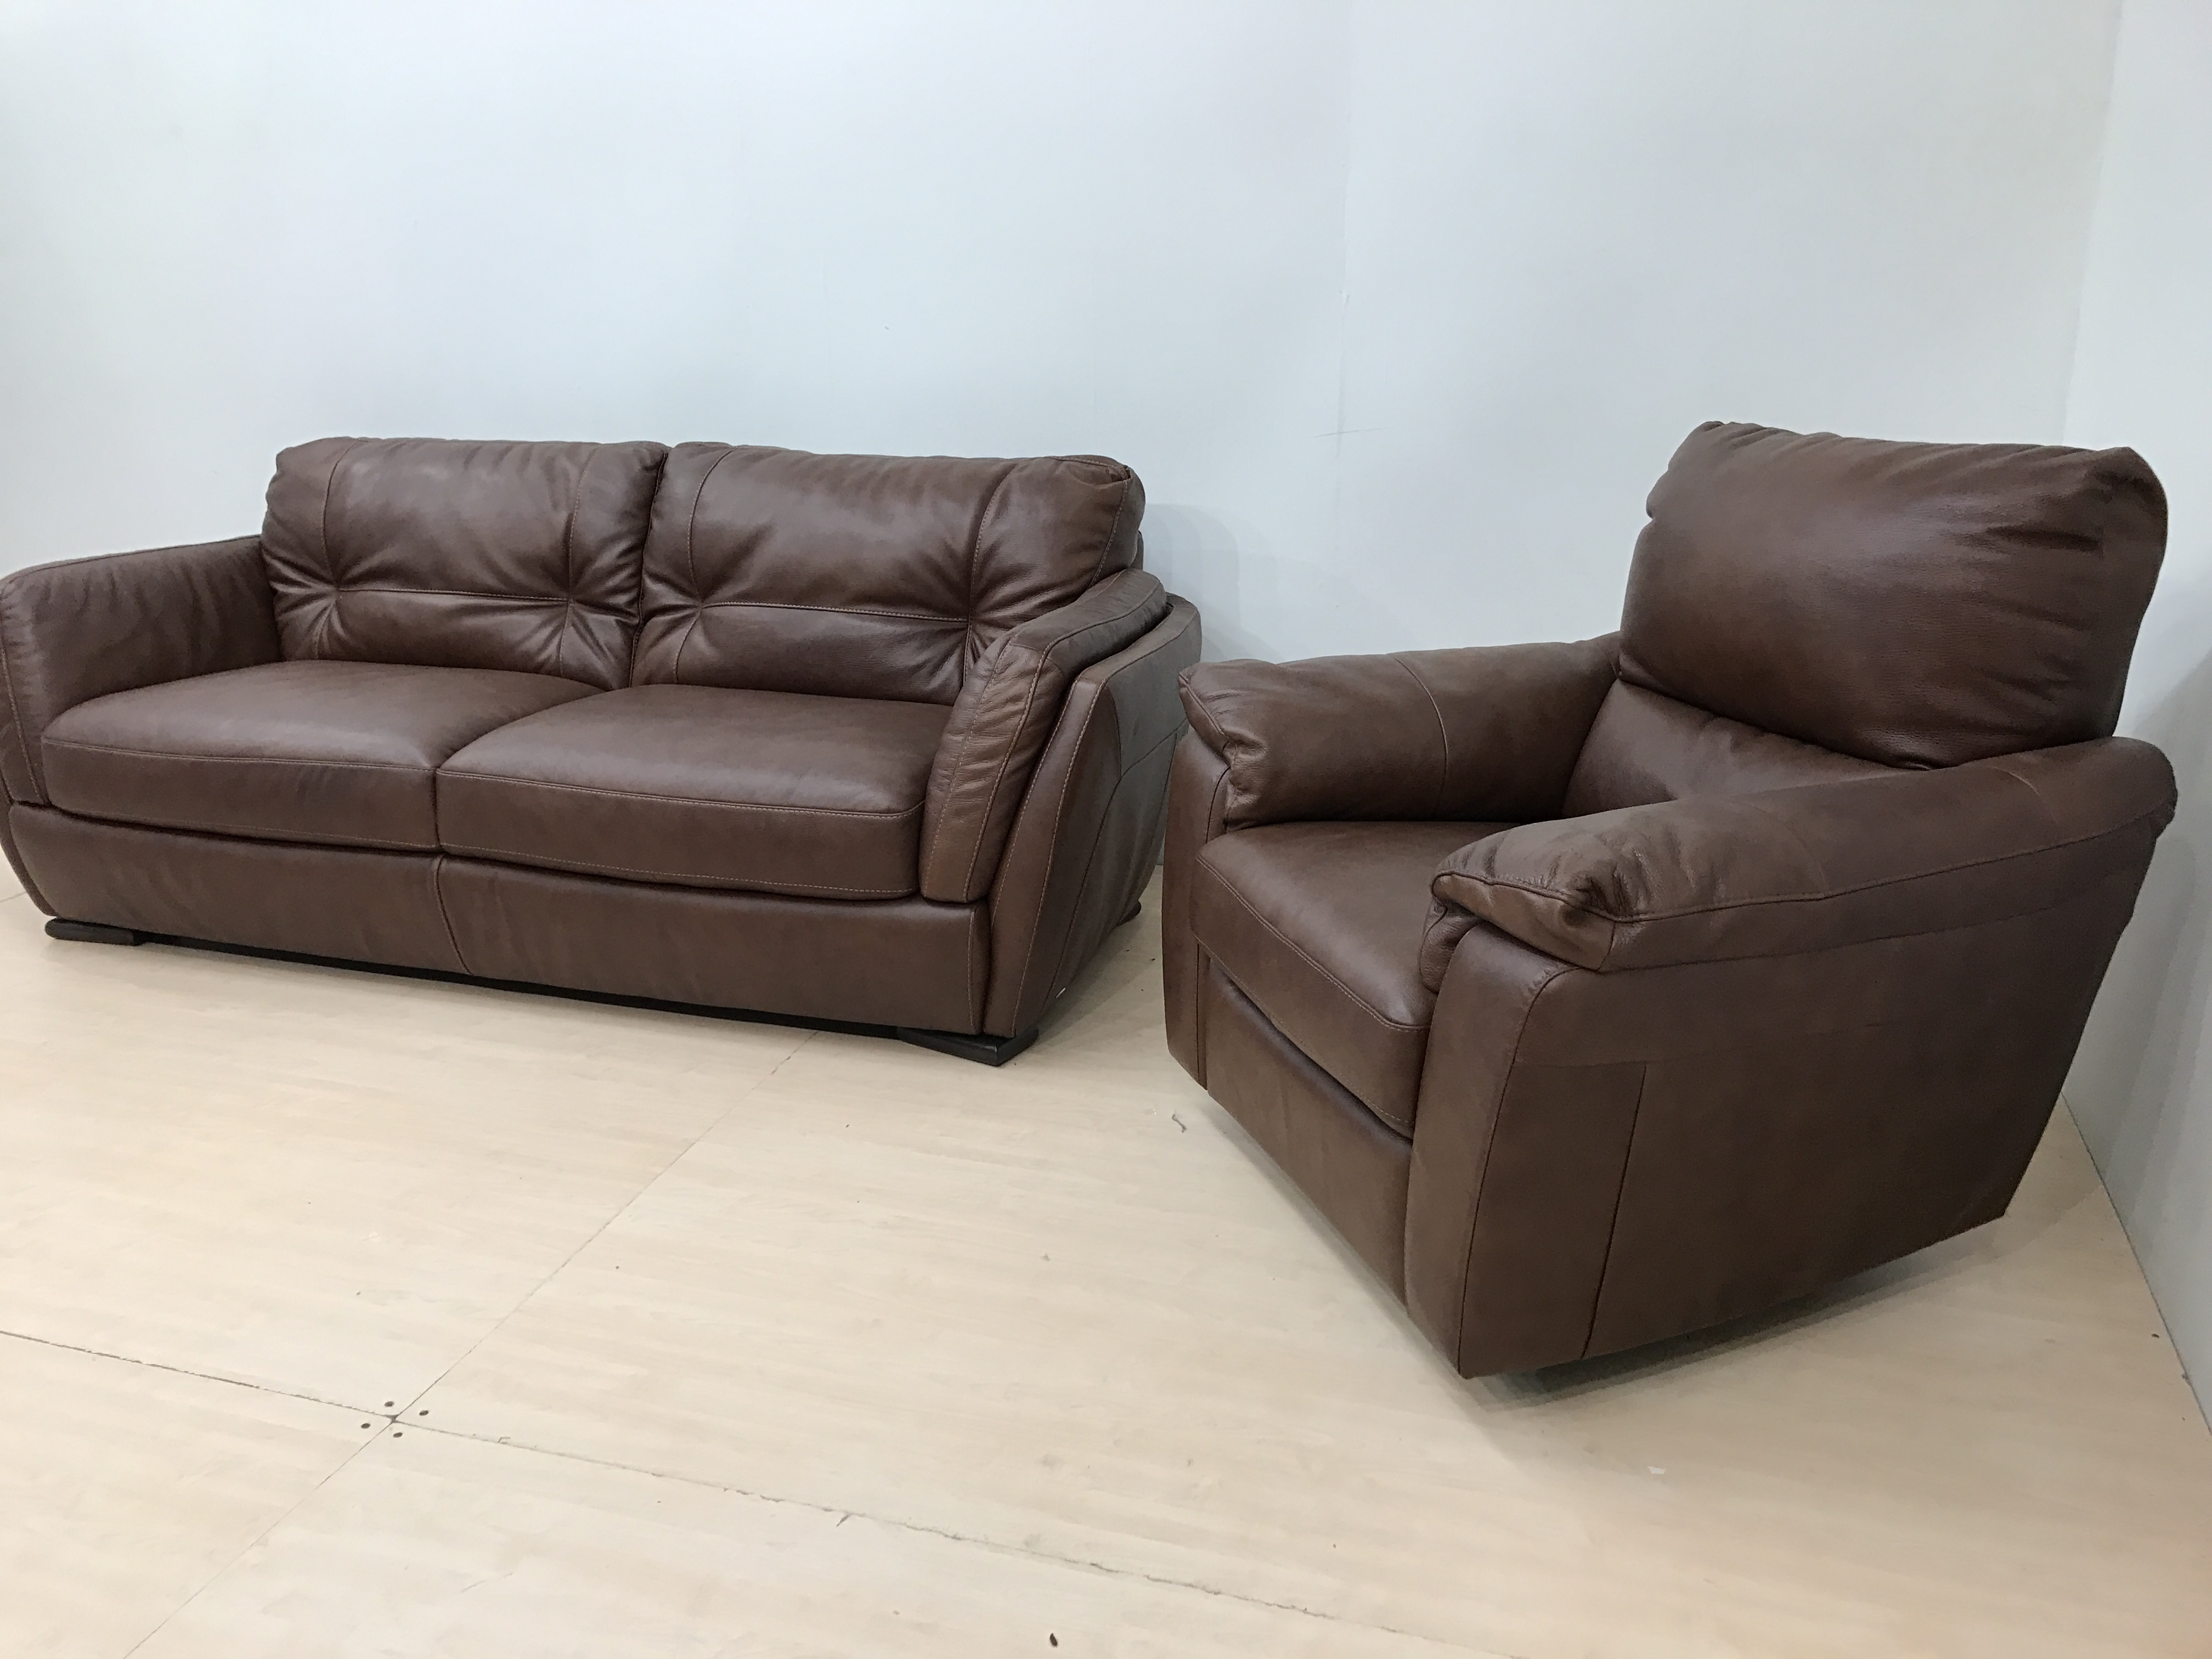 natuzzi editions havanna leather 3 seat rocking. Black Bedroom Furniture Sets. Home Design Ideas